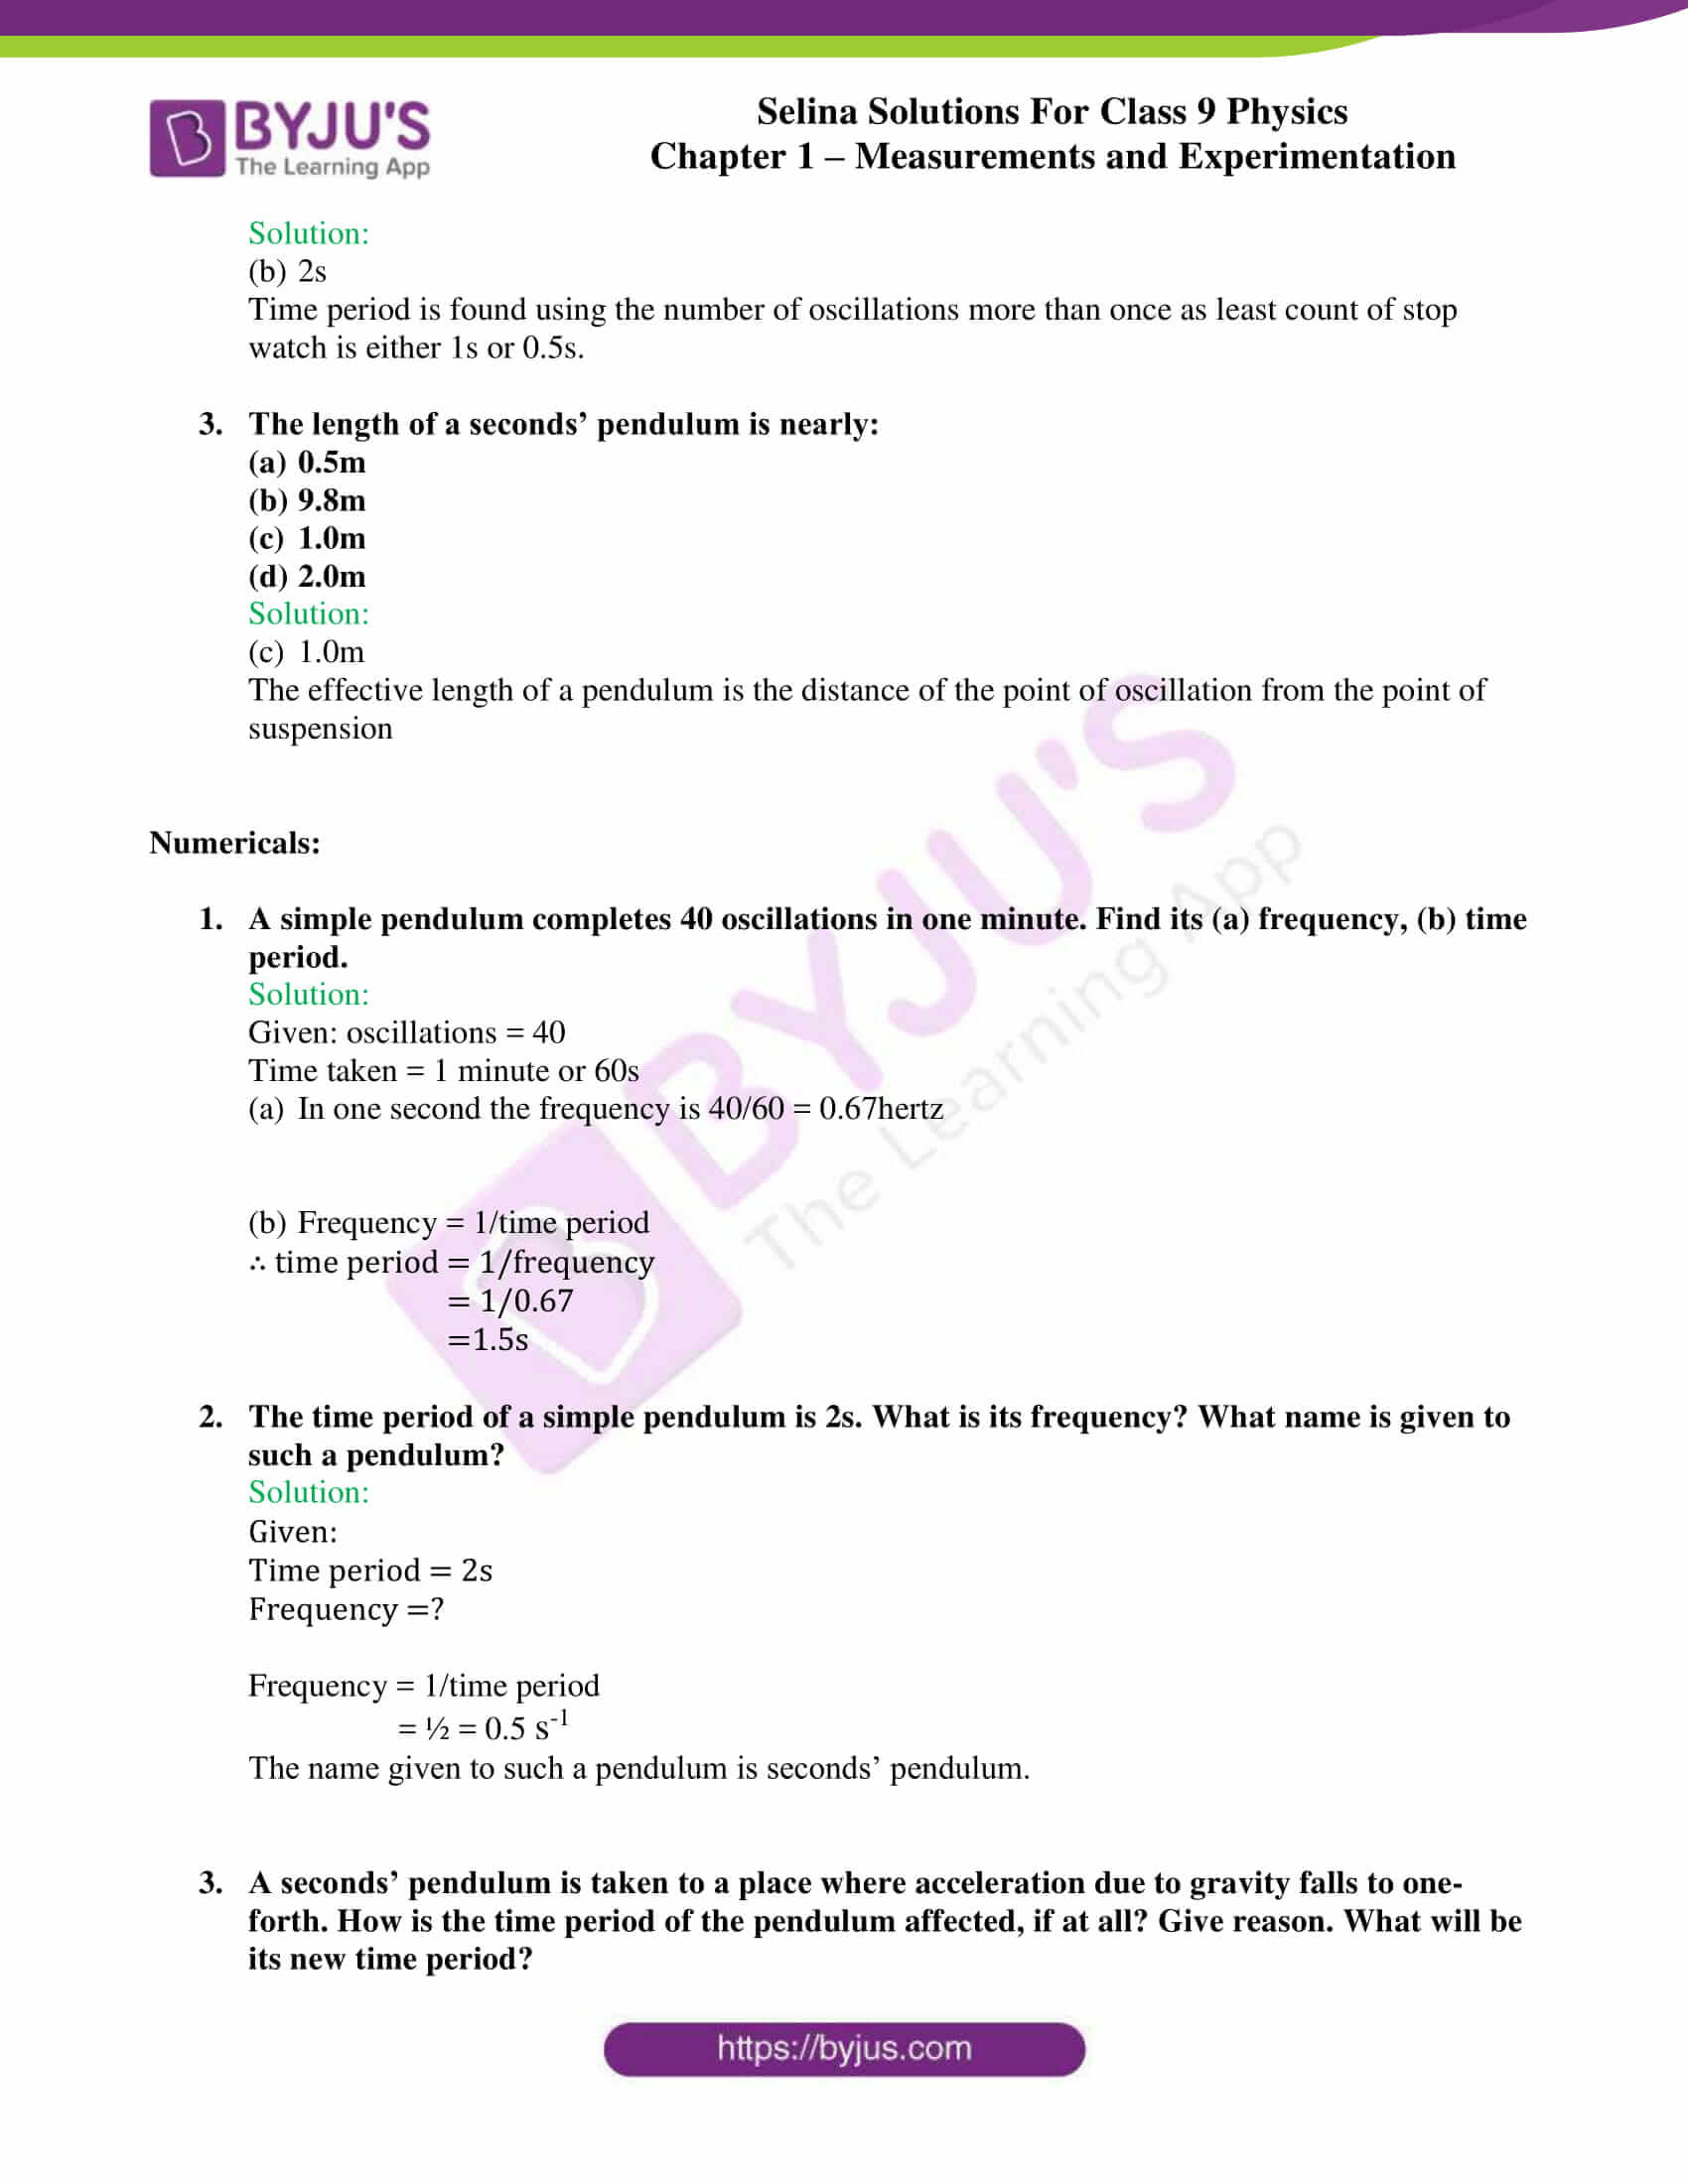 selina solutions class 9 physics chapter 1 Measurements and Experimentation part 29